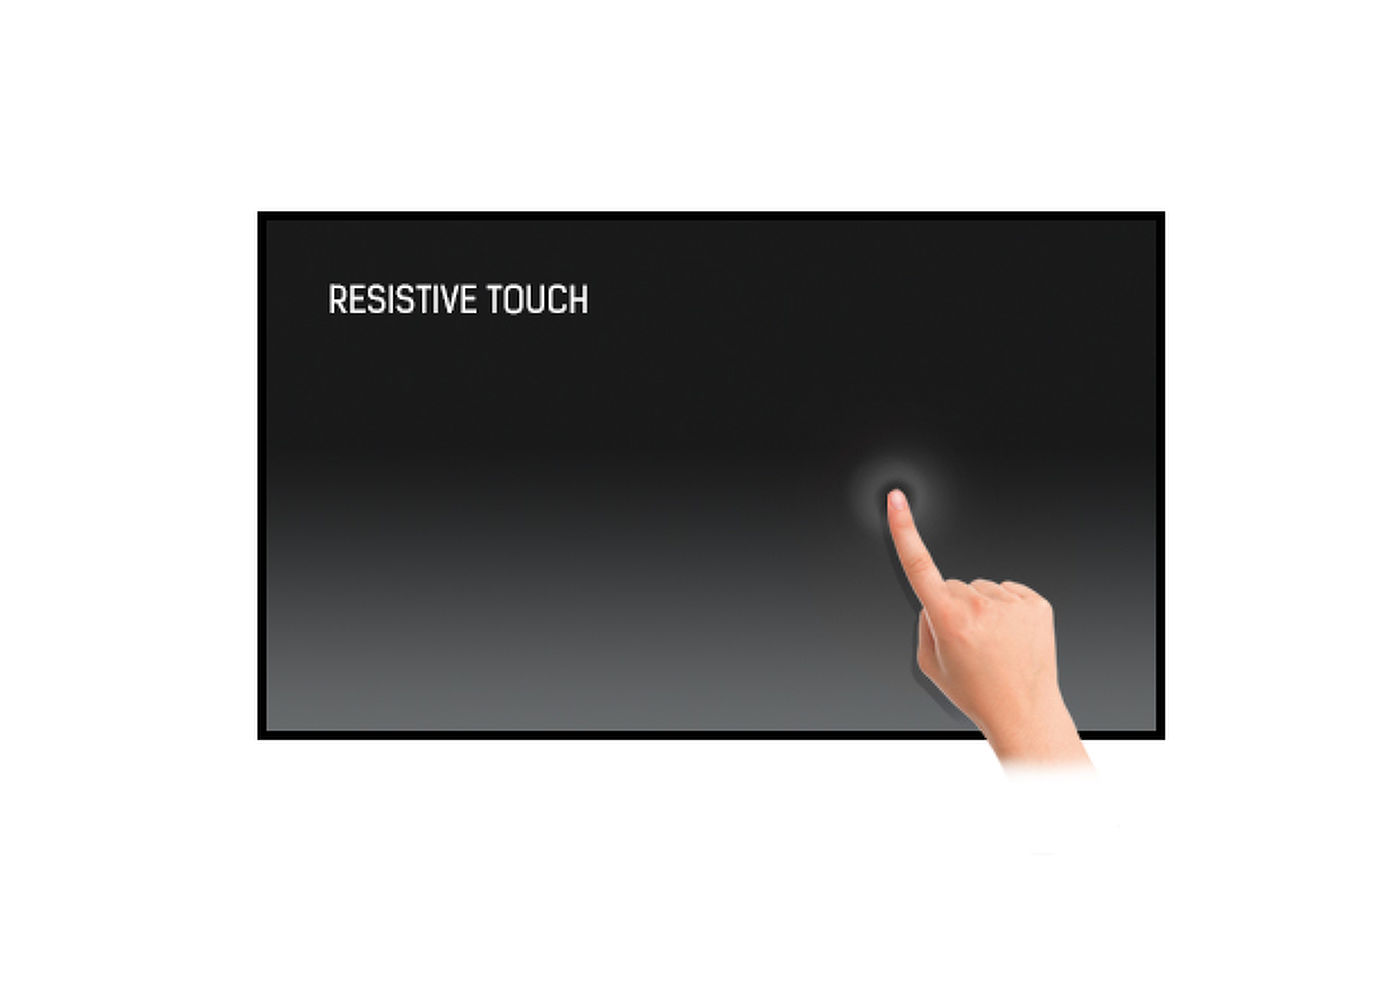 TOUCH TECHNOLOGY - RESISTIVE